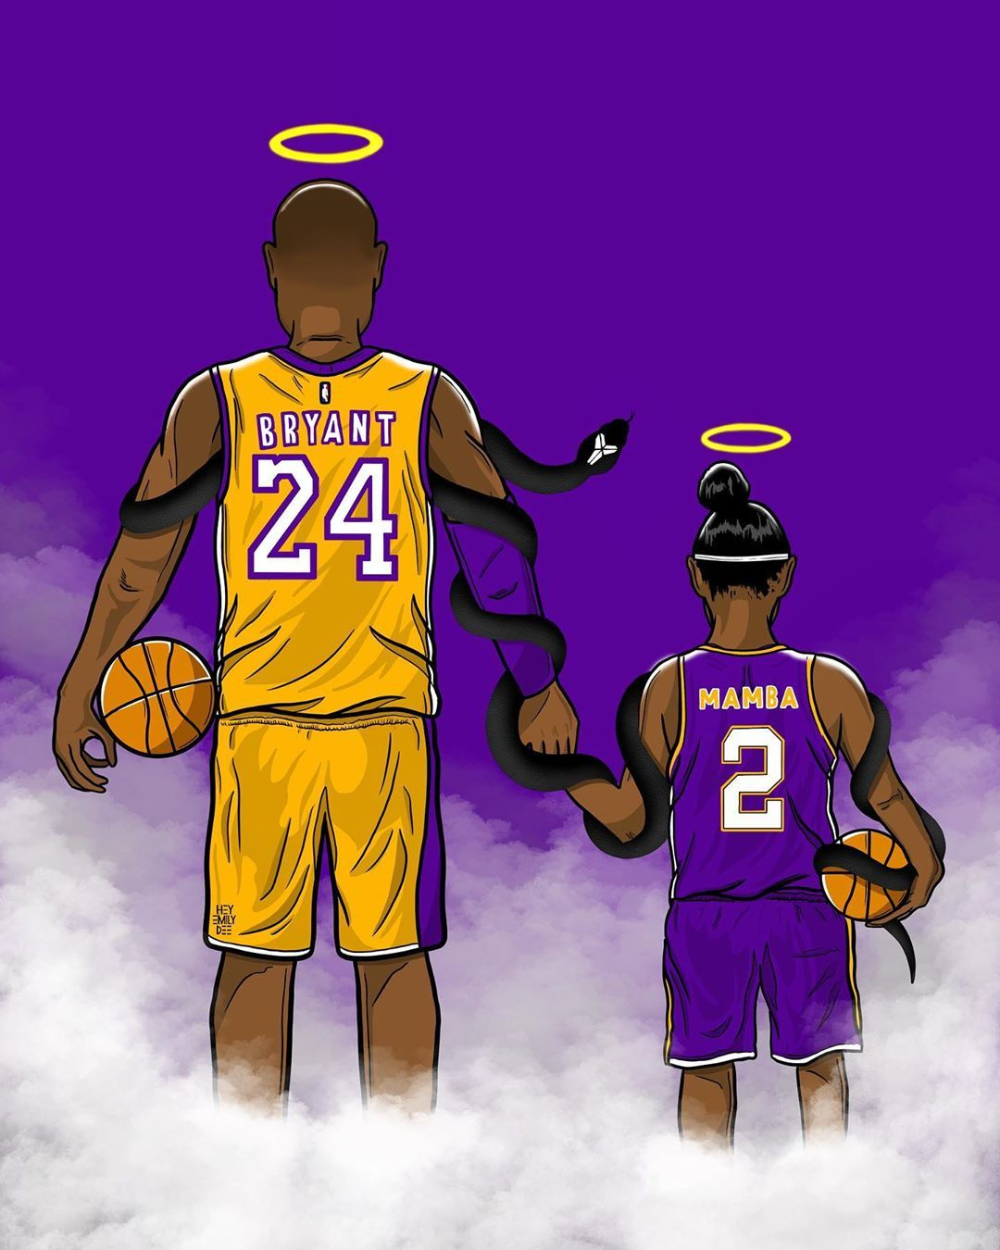 Artists around the world immortalize Kobe and Gianna